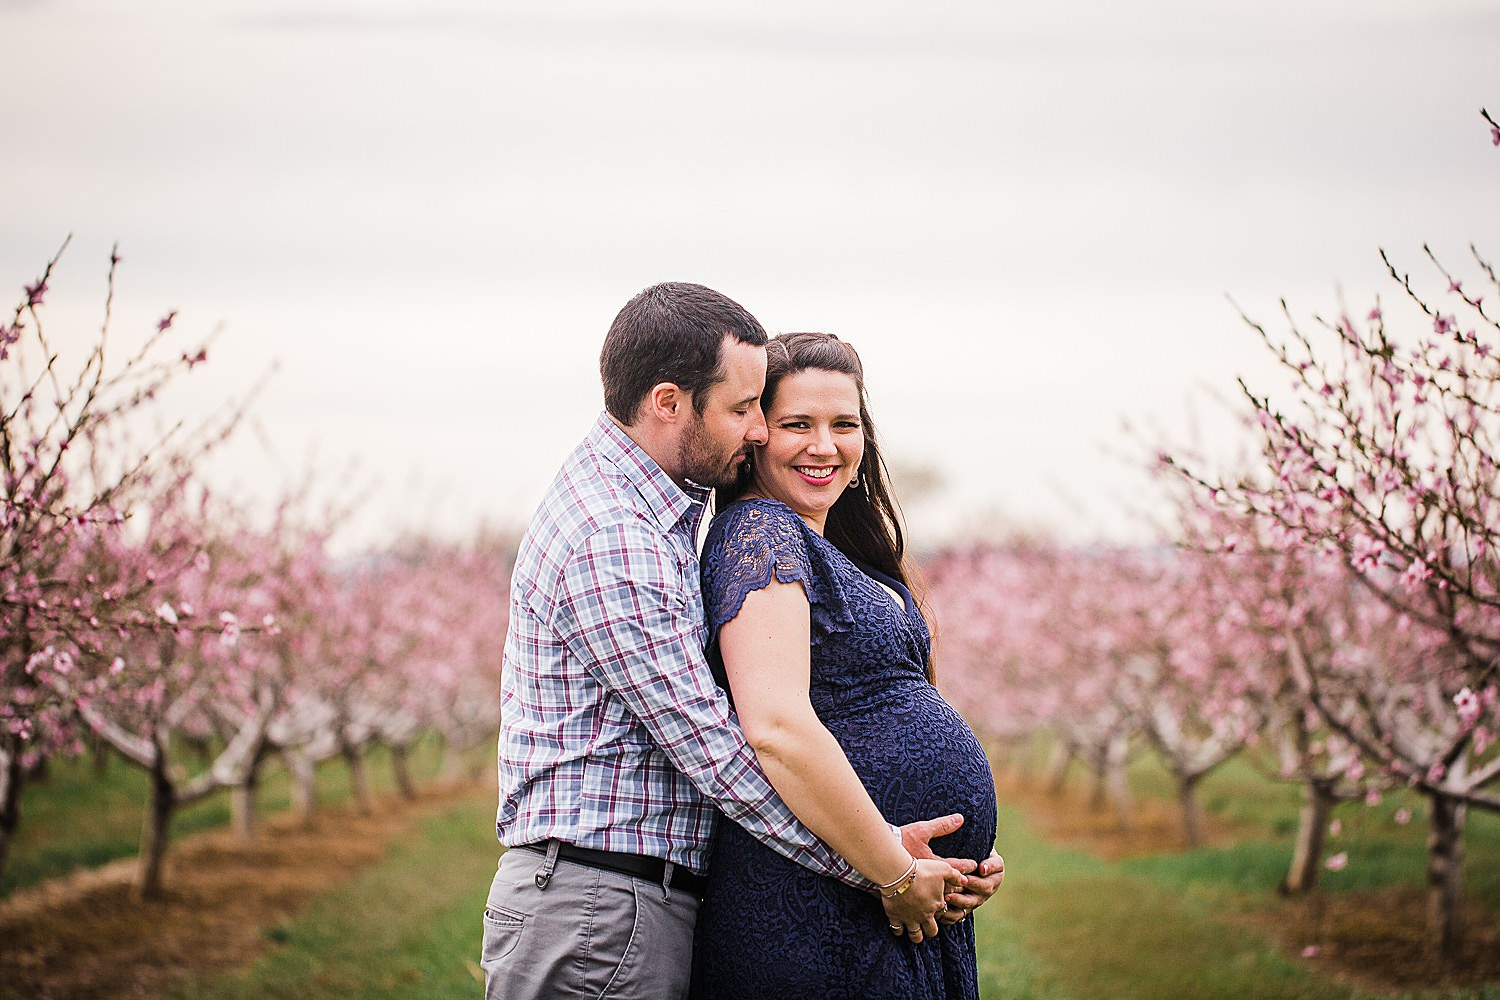 Photo of a pregnant woman in a blue lace dress standing with her husband in an orchard of flowers.